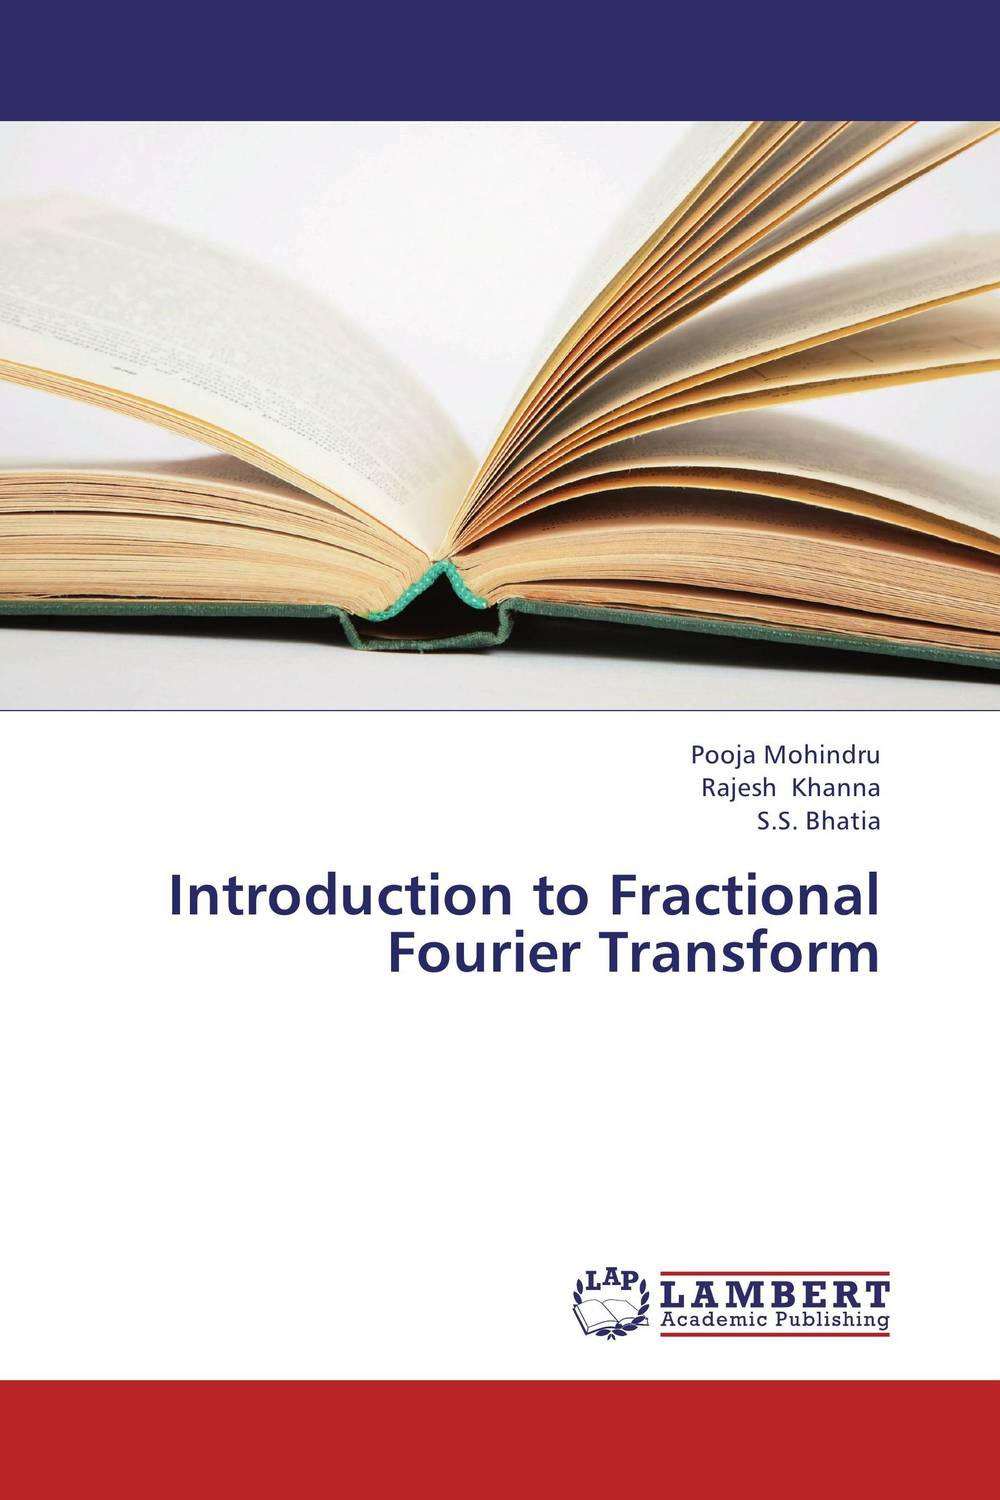 Introduction to Fractional Fourier Transform thomas c farrar pulse and fourier transform nmr